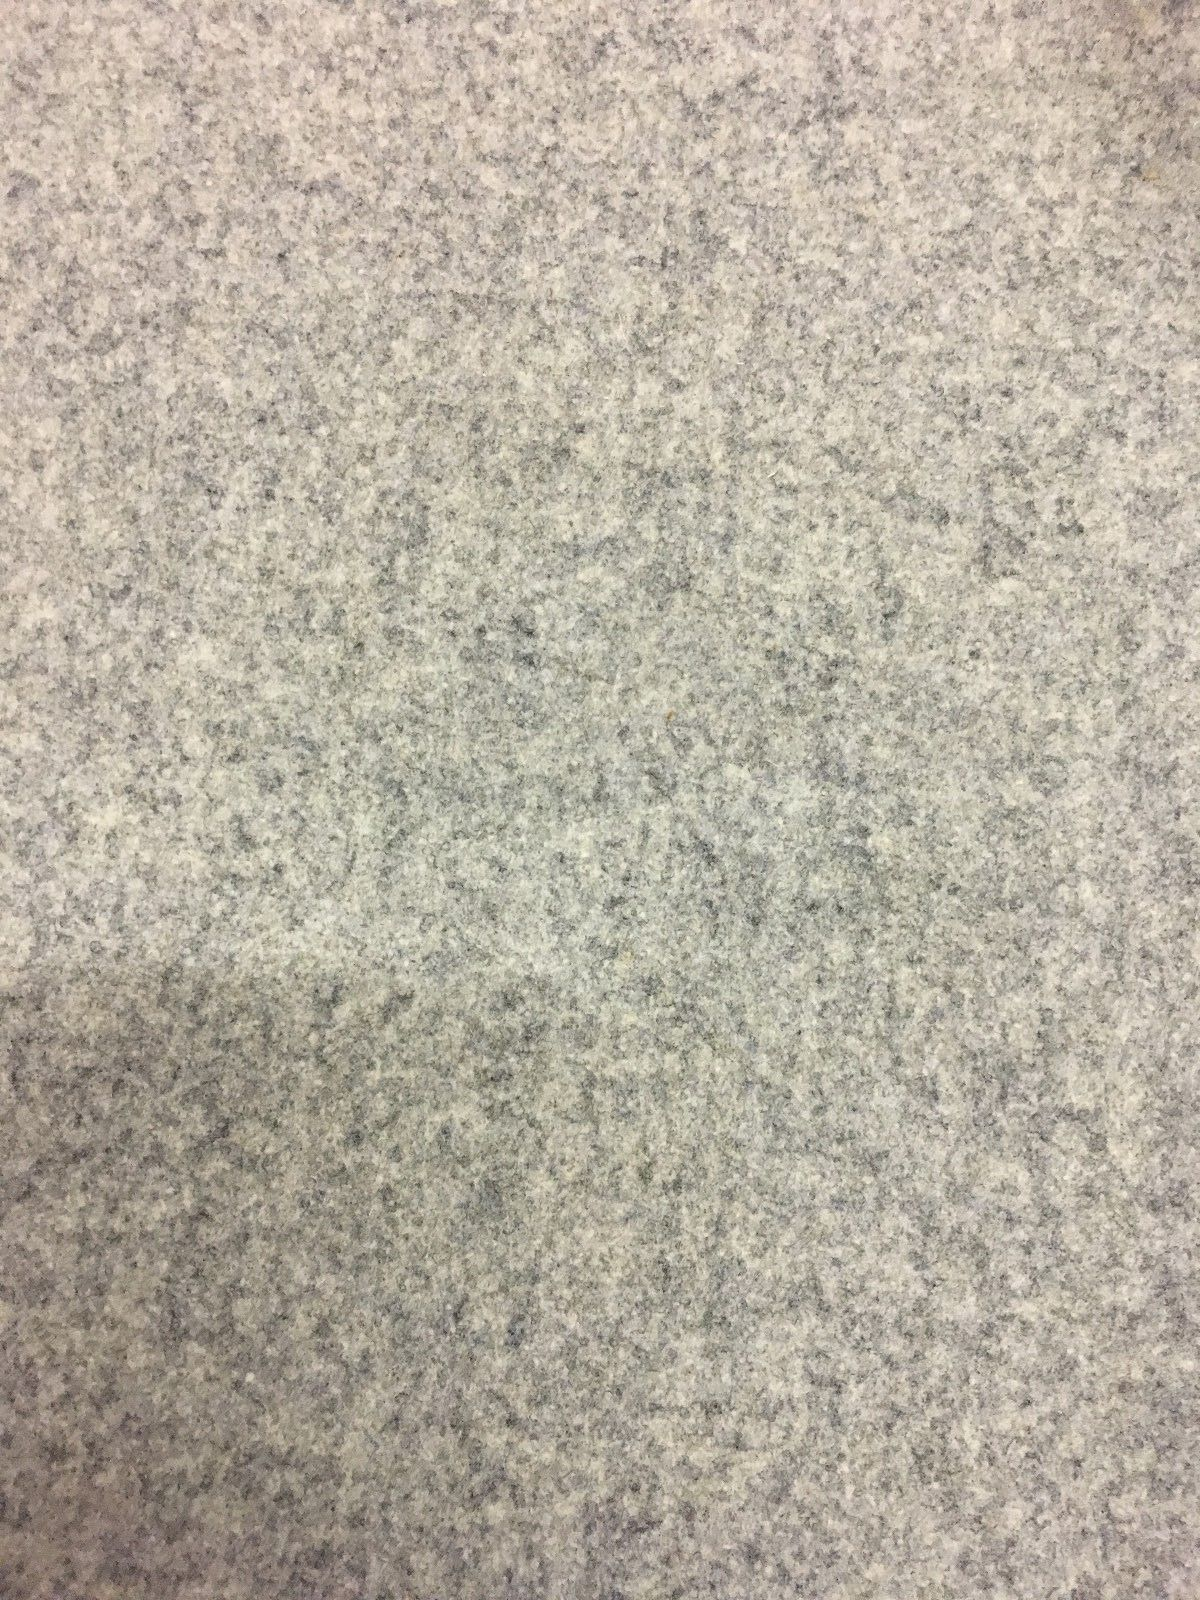 4.875 yds Wool Upholstery Fabric Mid Century Gray Melange CL